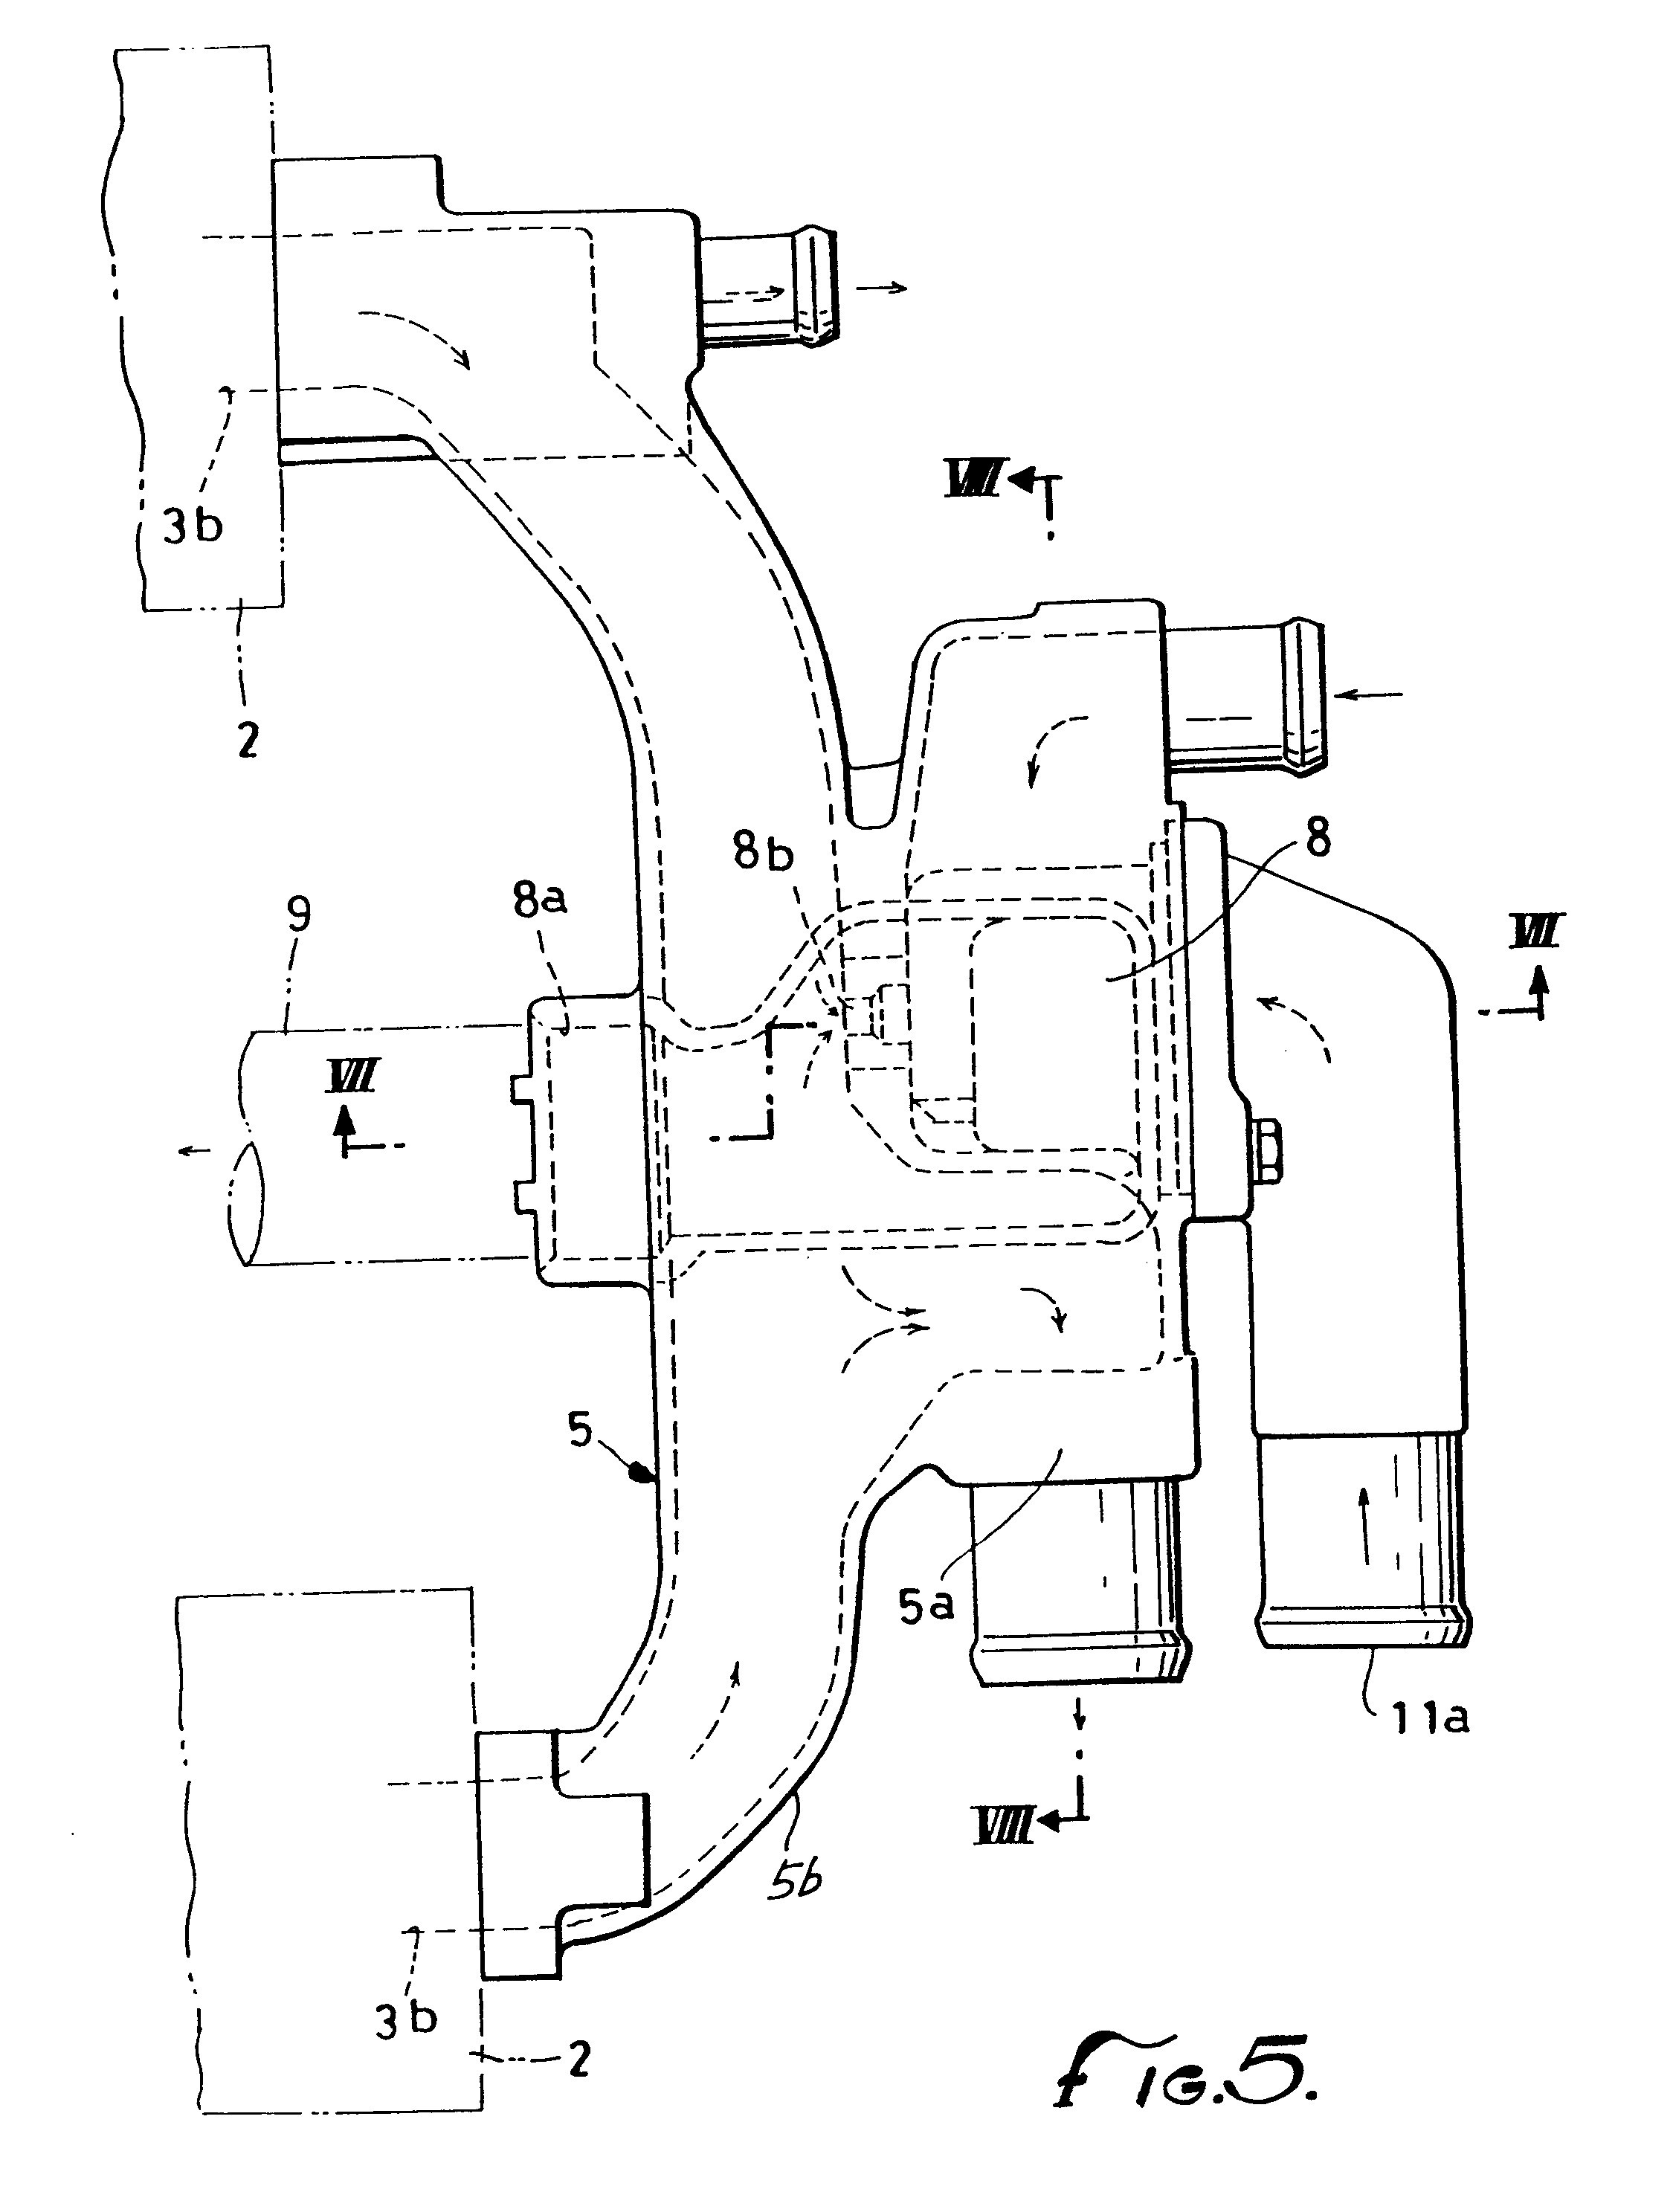 Diagram Of An Internal Combustion Engine Internal Bustion Engine Diagram Patent Ep A2 Internal Bustion Of Diagram Of An Internal Combustion Engine